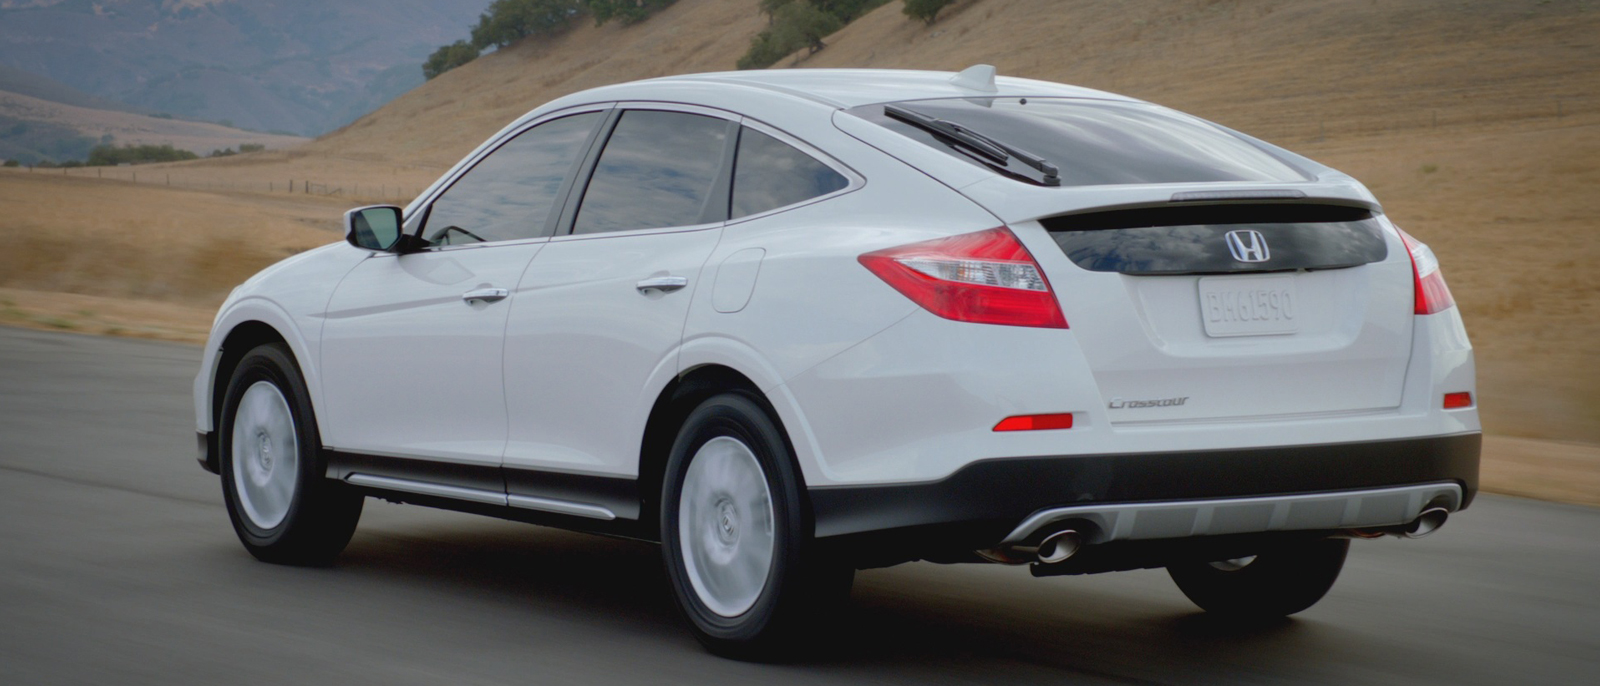 as new crosstour carscoops take honda kills its it official suvs s over